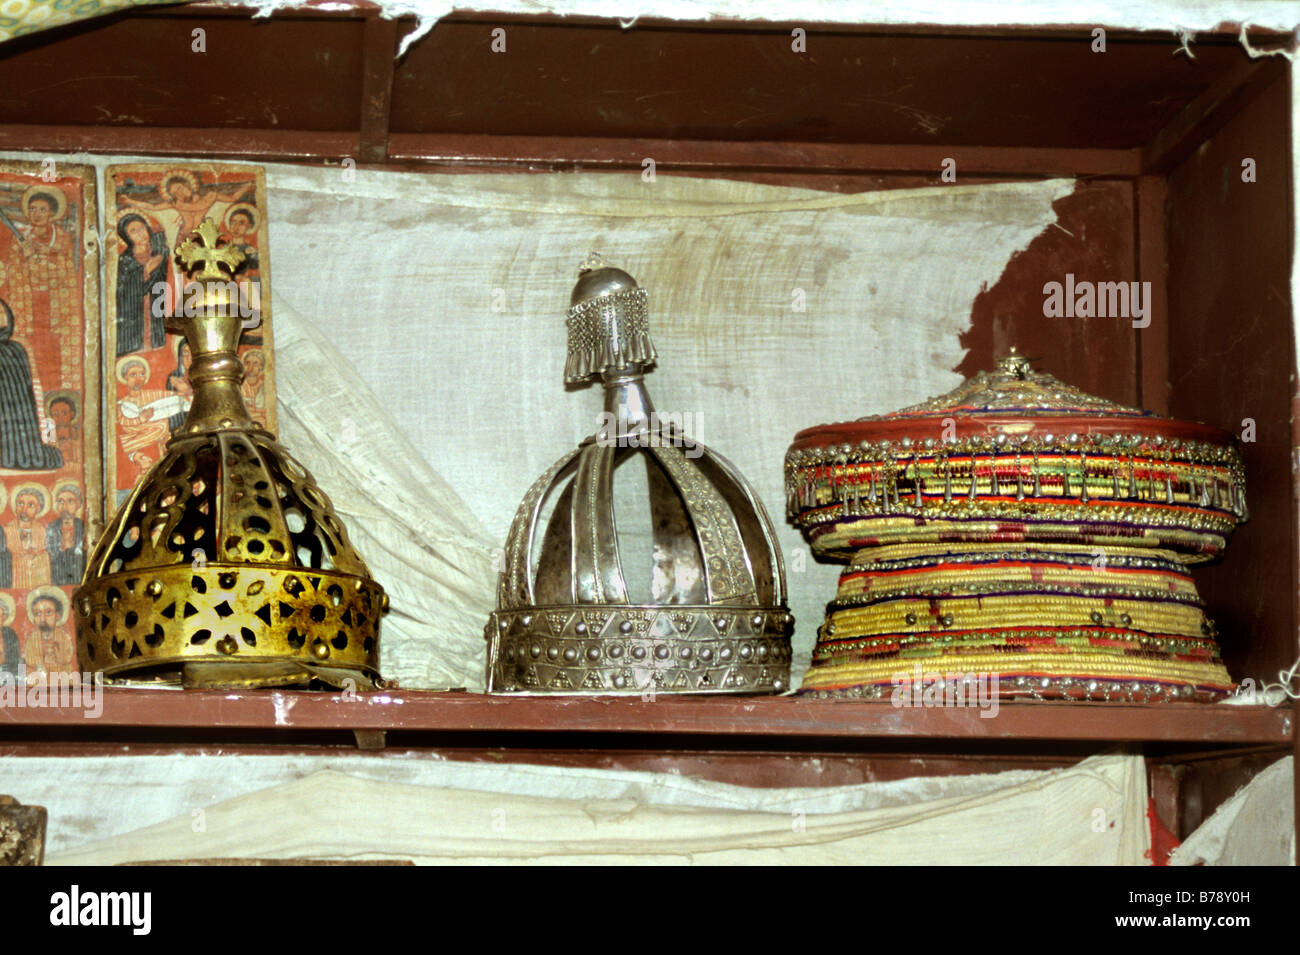 A selection of crowns used in religious ceremonies Lalibela Na'akuto La'ab church - Stock Image